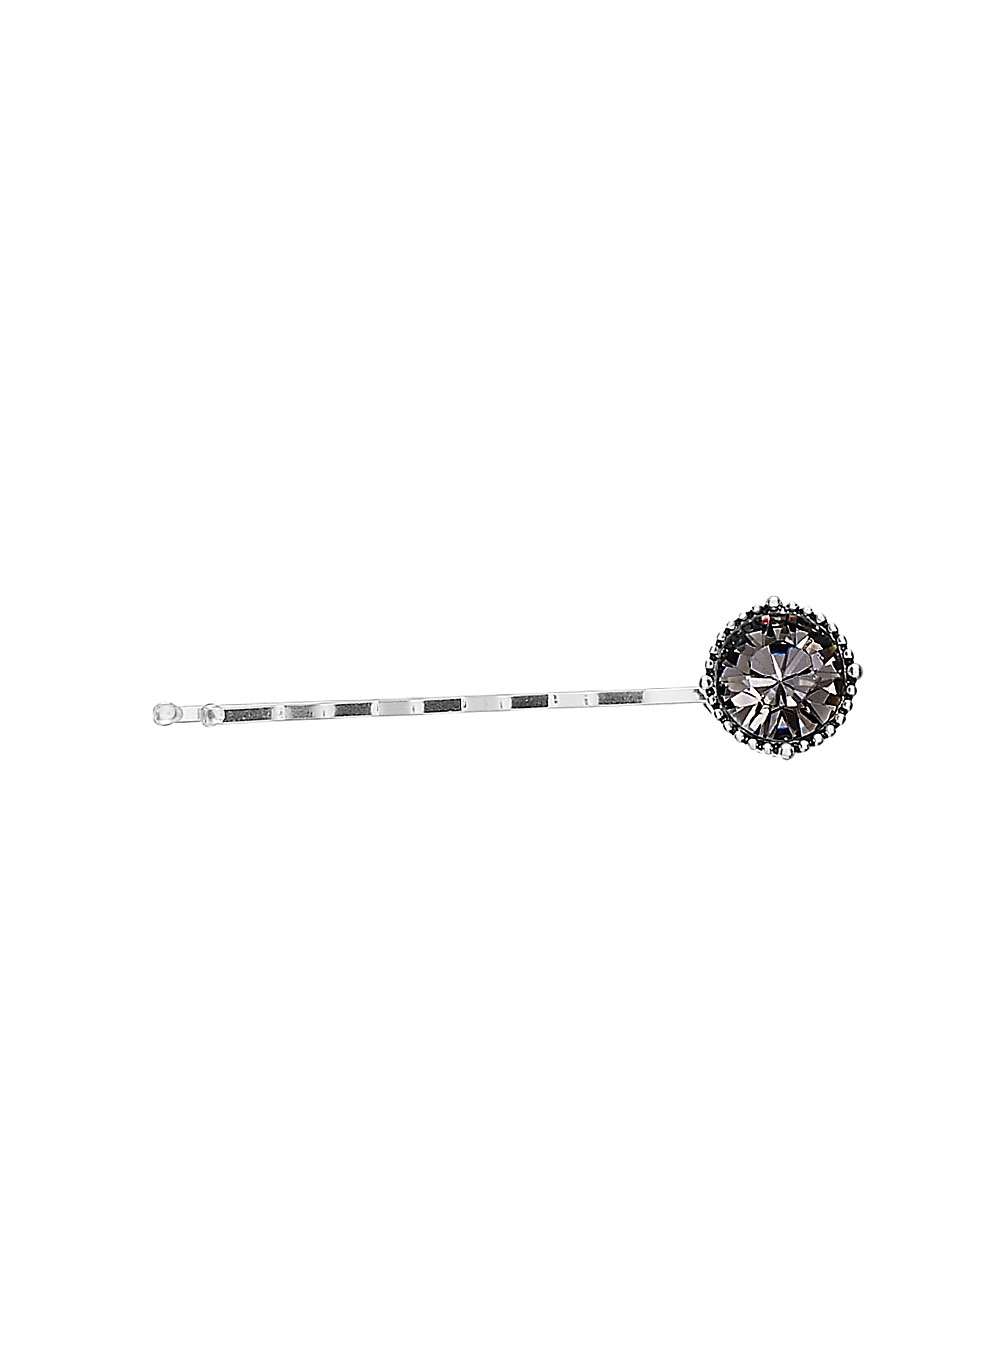 PILGRIM Devotion Hair Clip - Silver Plate Black Diamond (Grey) Swarovski Crystals BNWT